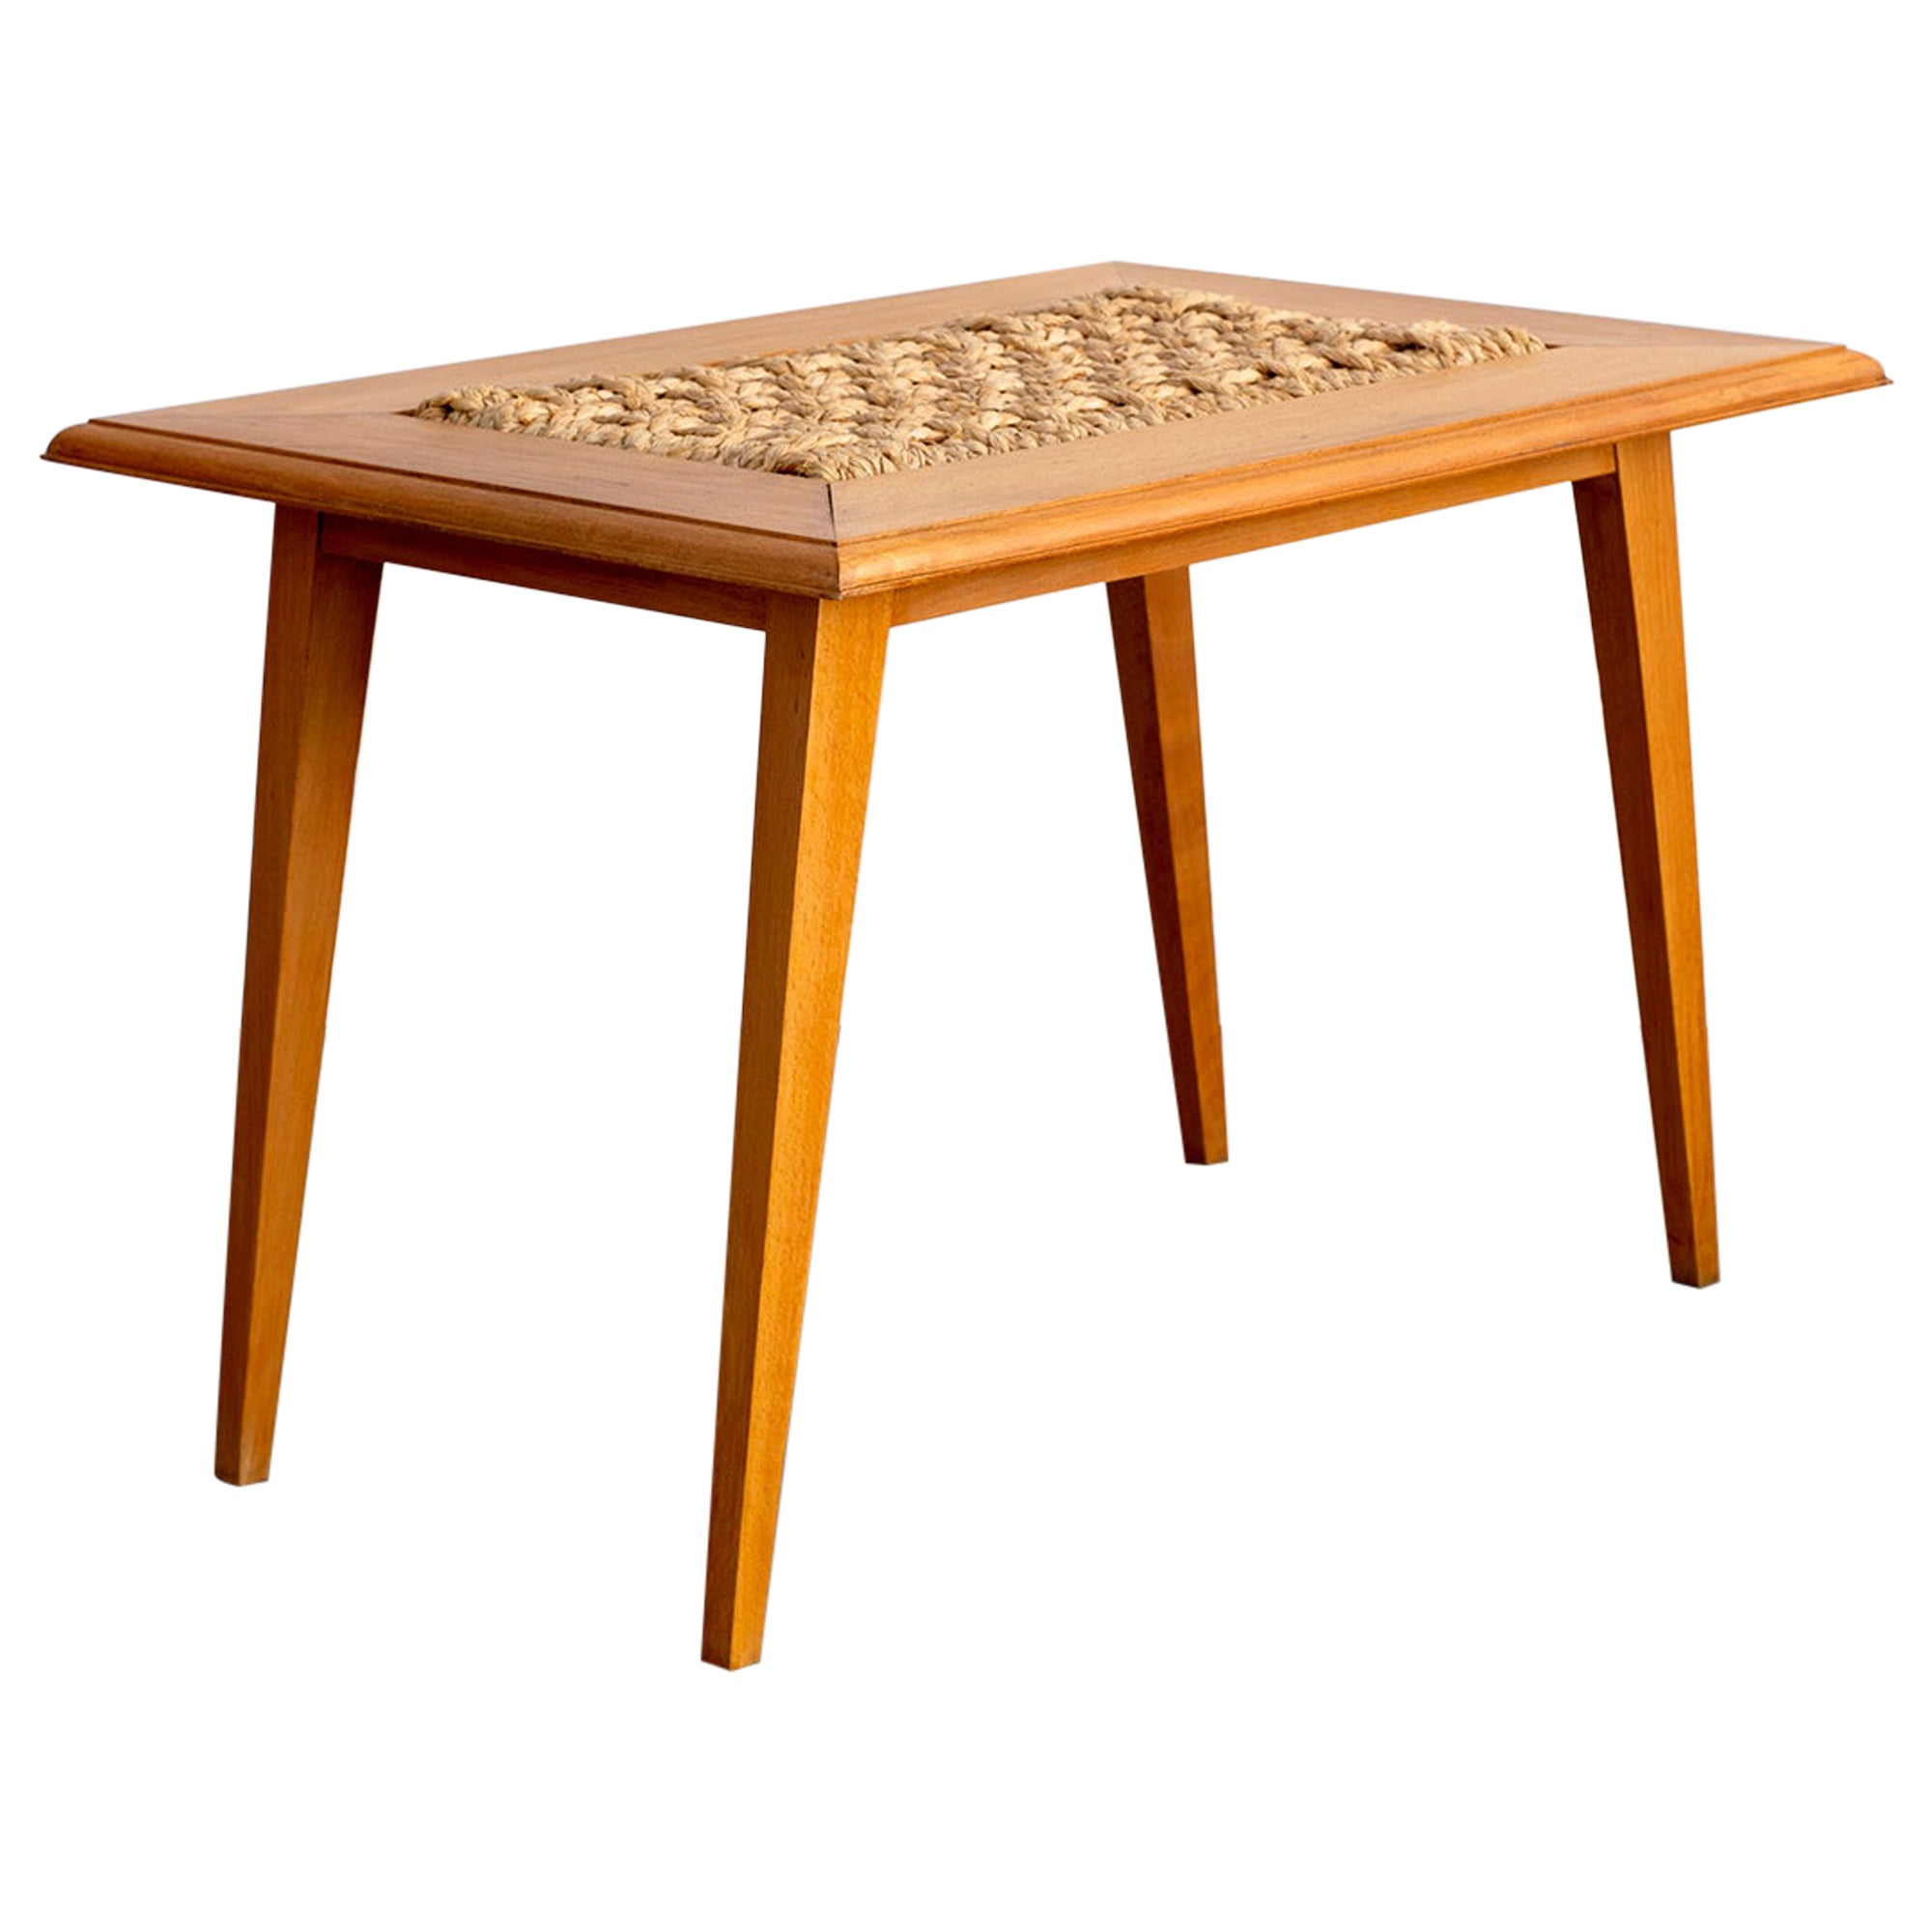 Audoux Minet Table